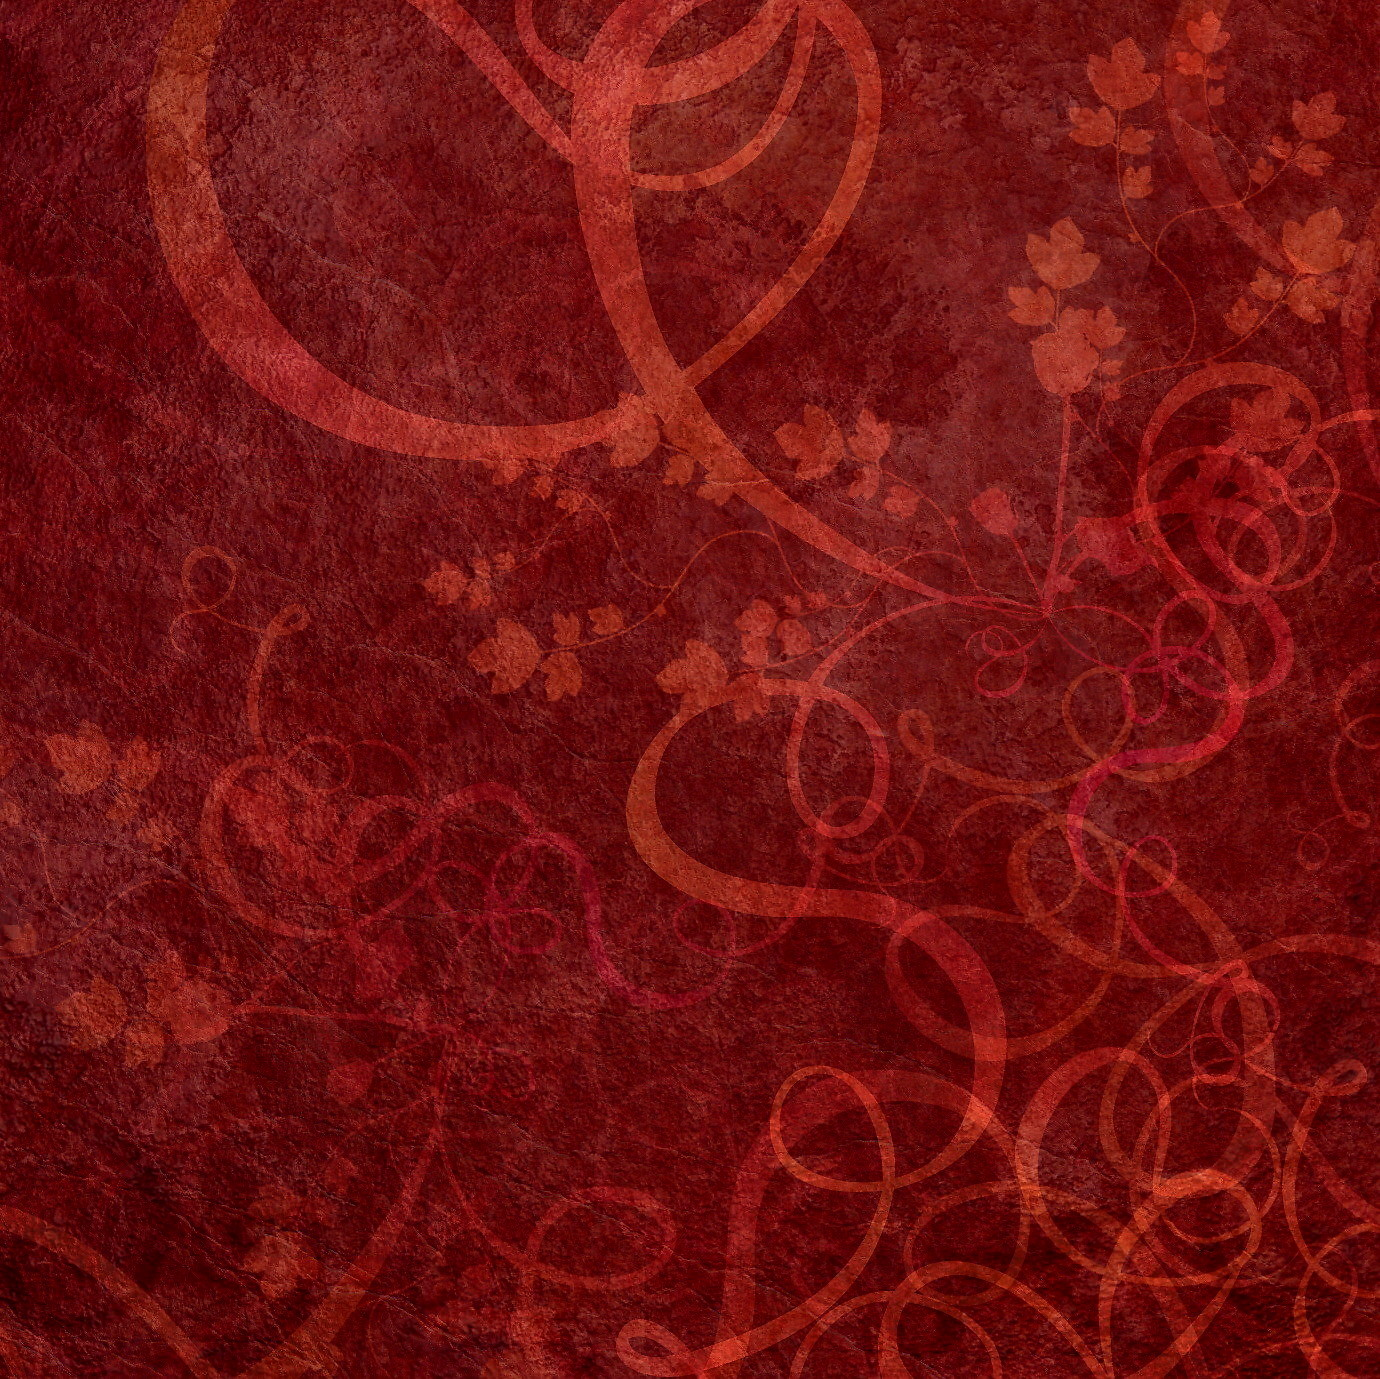 TEXTURES_38_by_Inthename_Stock.jpg